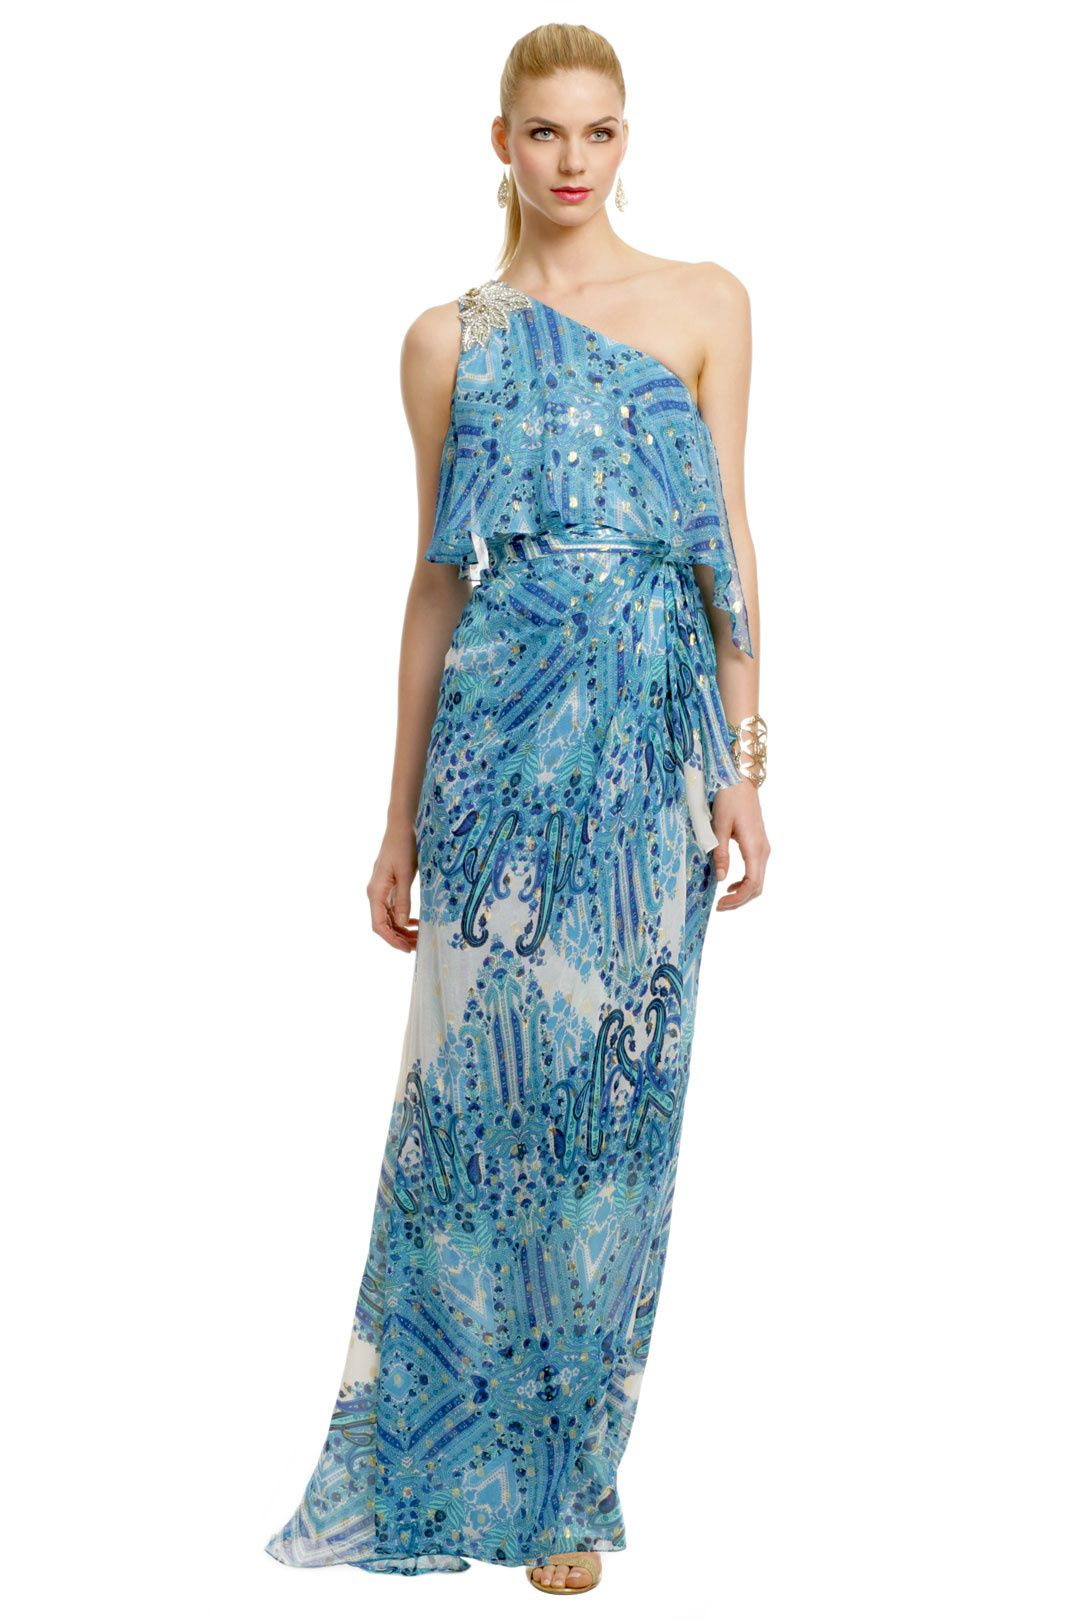 Badgley Mischka Dream On Gown This dress was just made